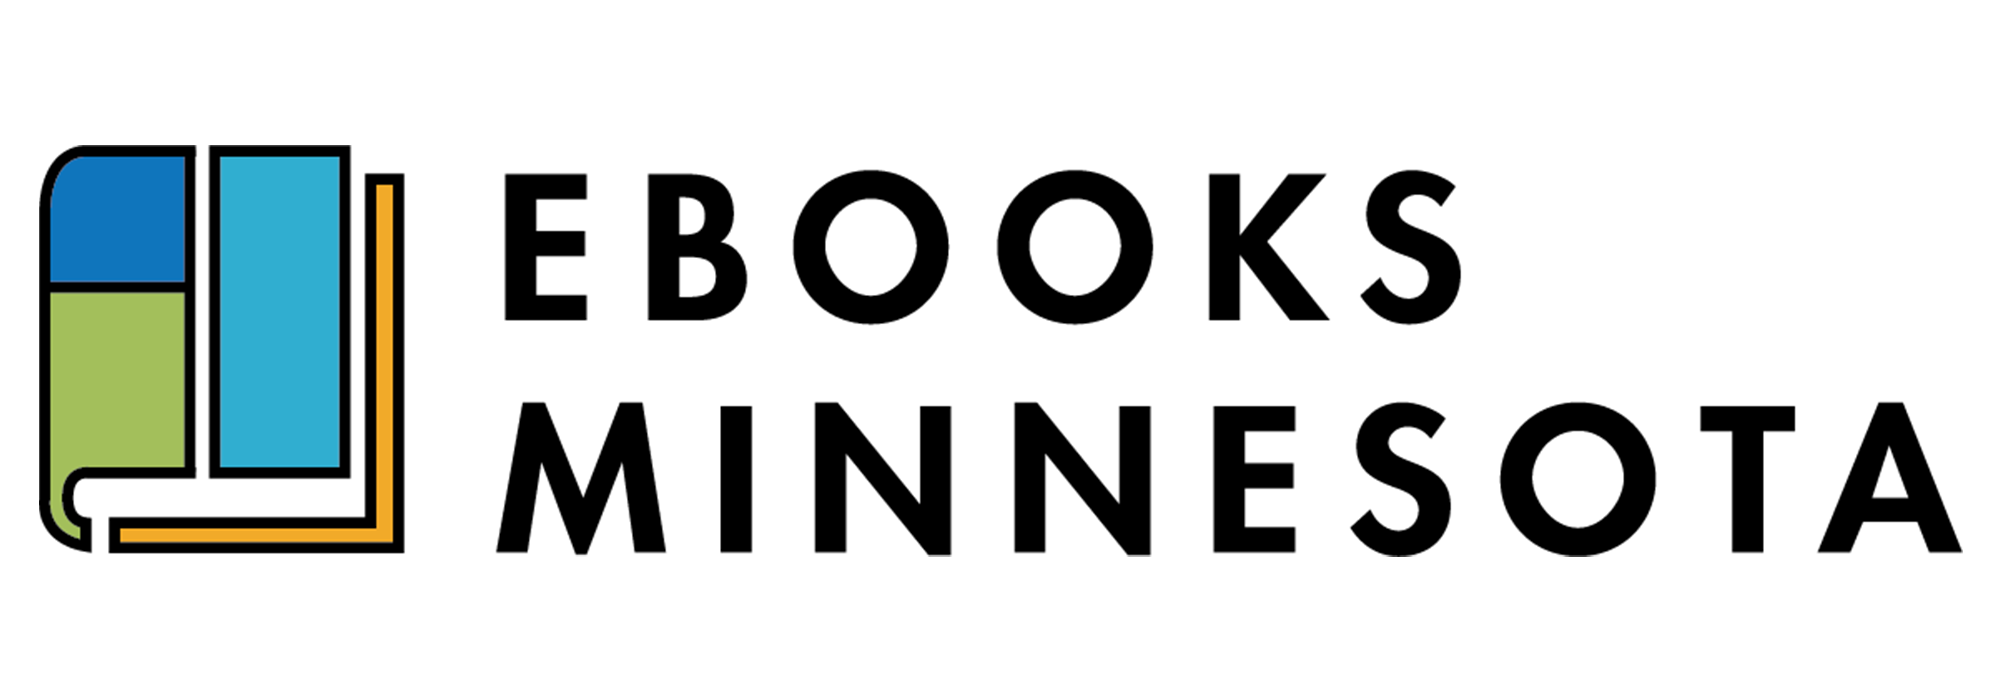 Ebooks Minnesota logo.